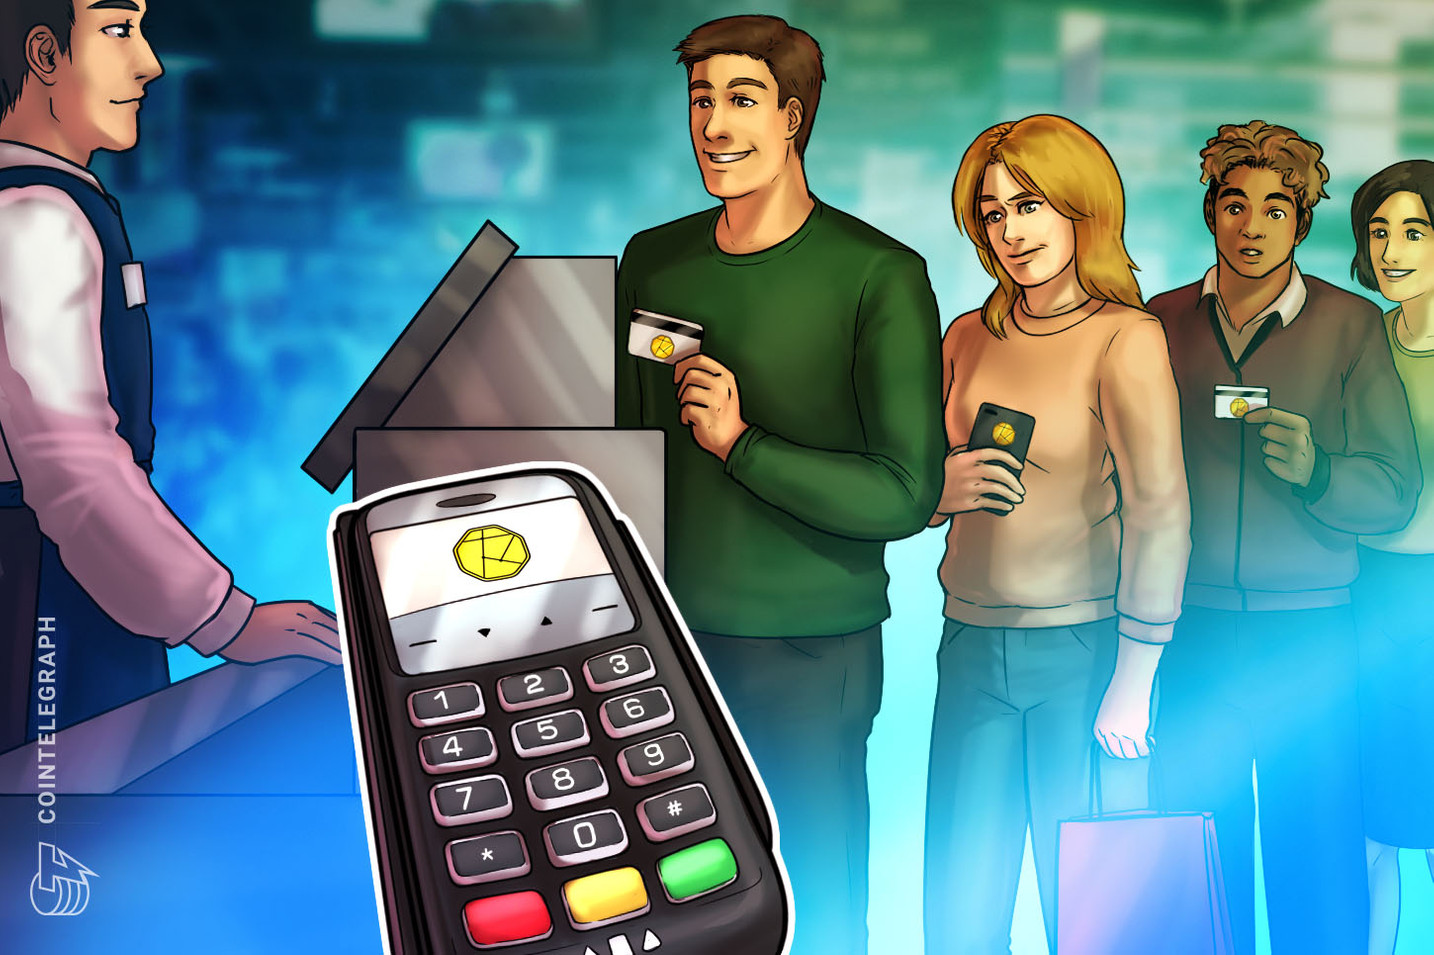 FedNow — US Federal Reserve Payment Tool a Threat to Banks, Not Crypto